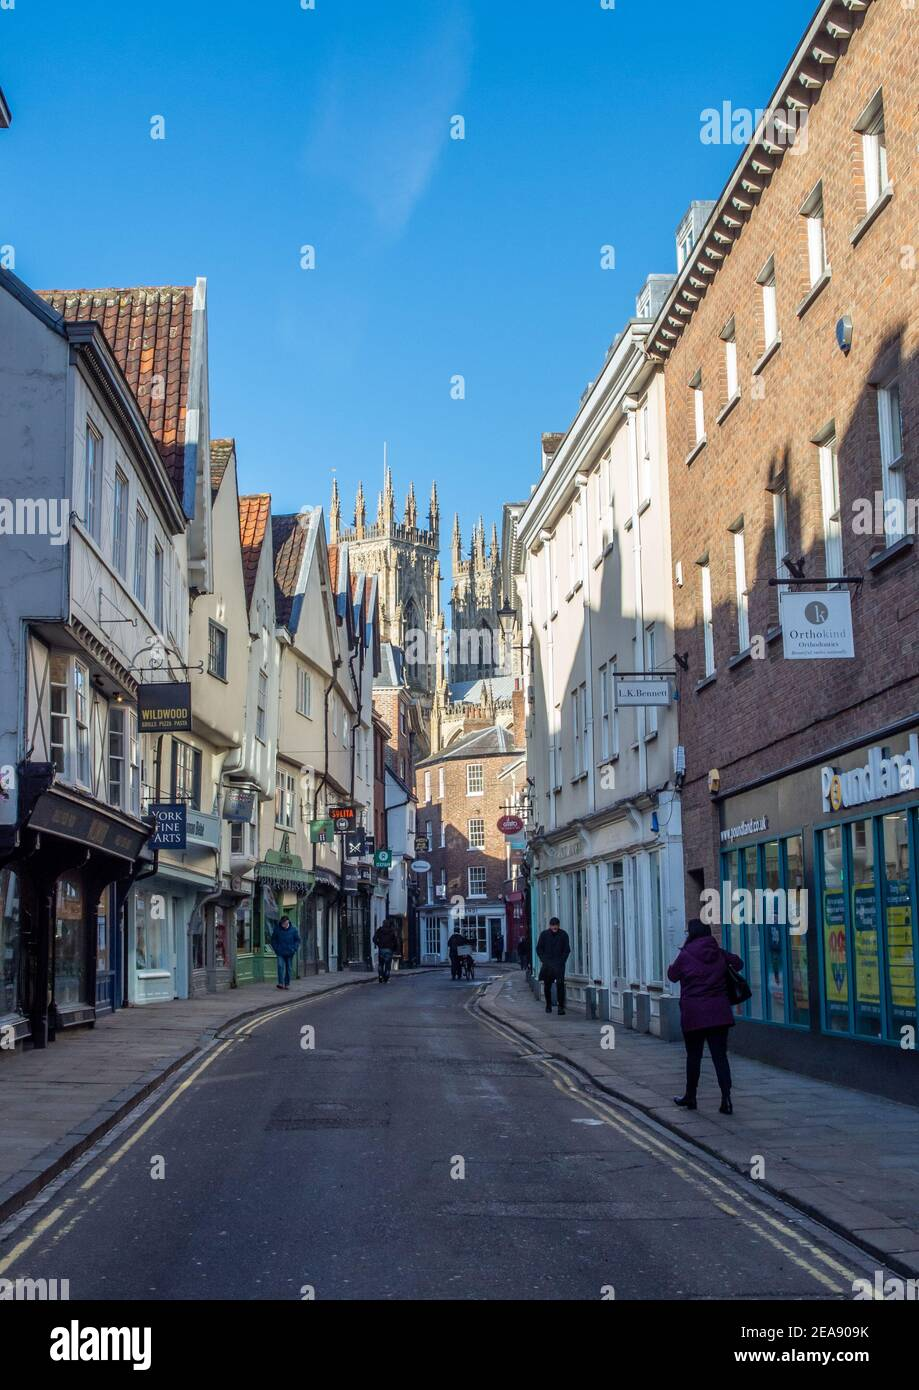 York, Yorkshire, UK, 01/02/2021 - A quiet Petergate in York with few people on the street looking towards York Minster. Stock Photo